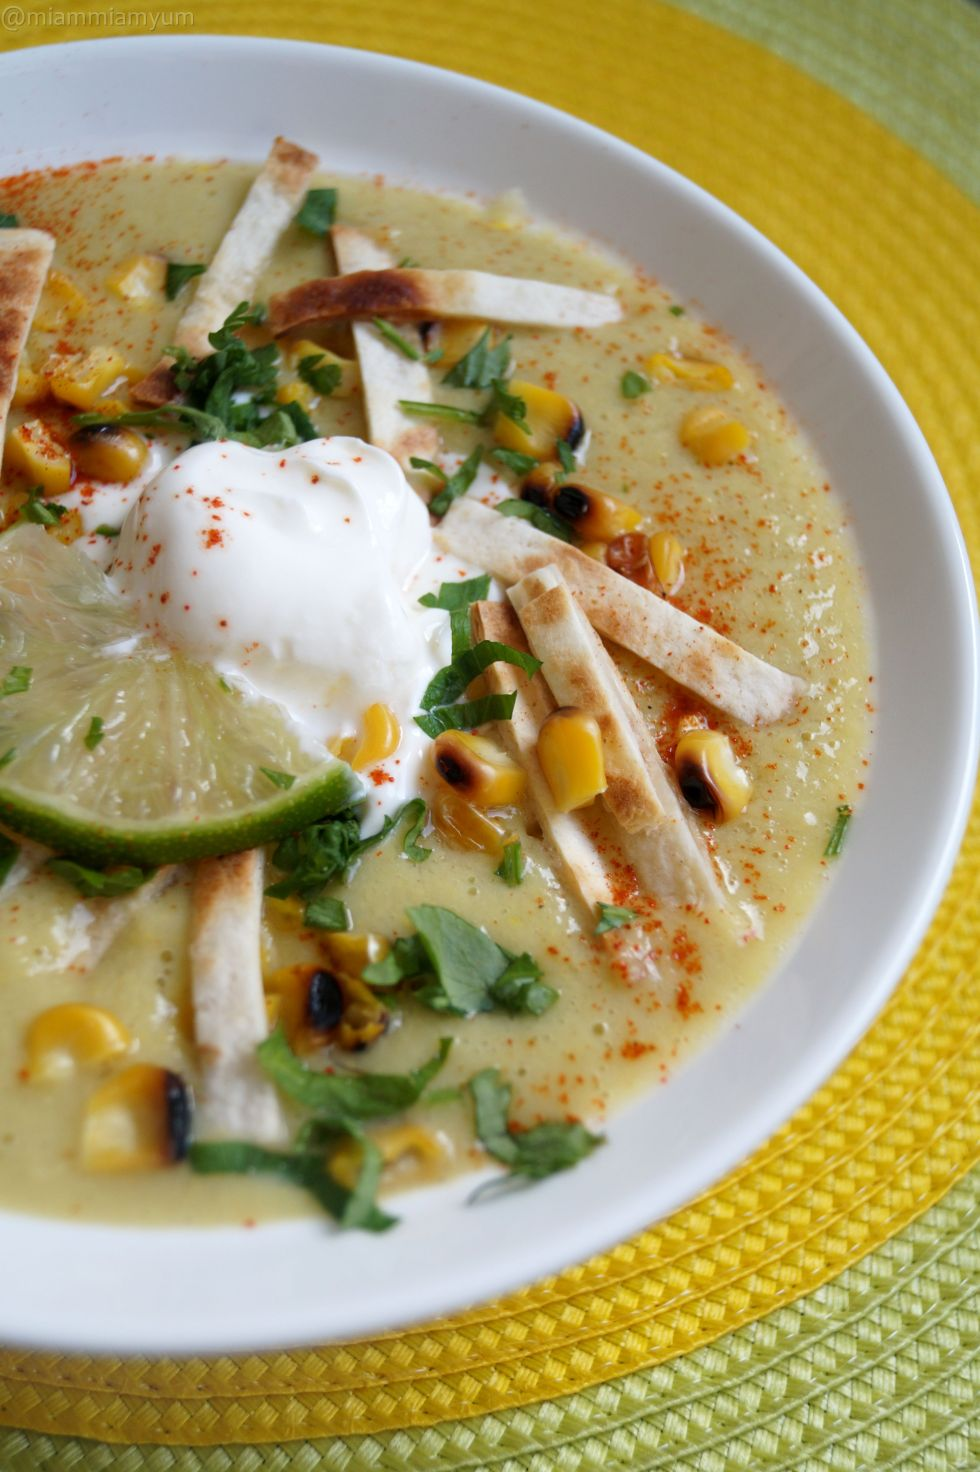 Sweetcorn soup